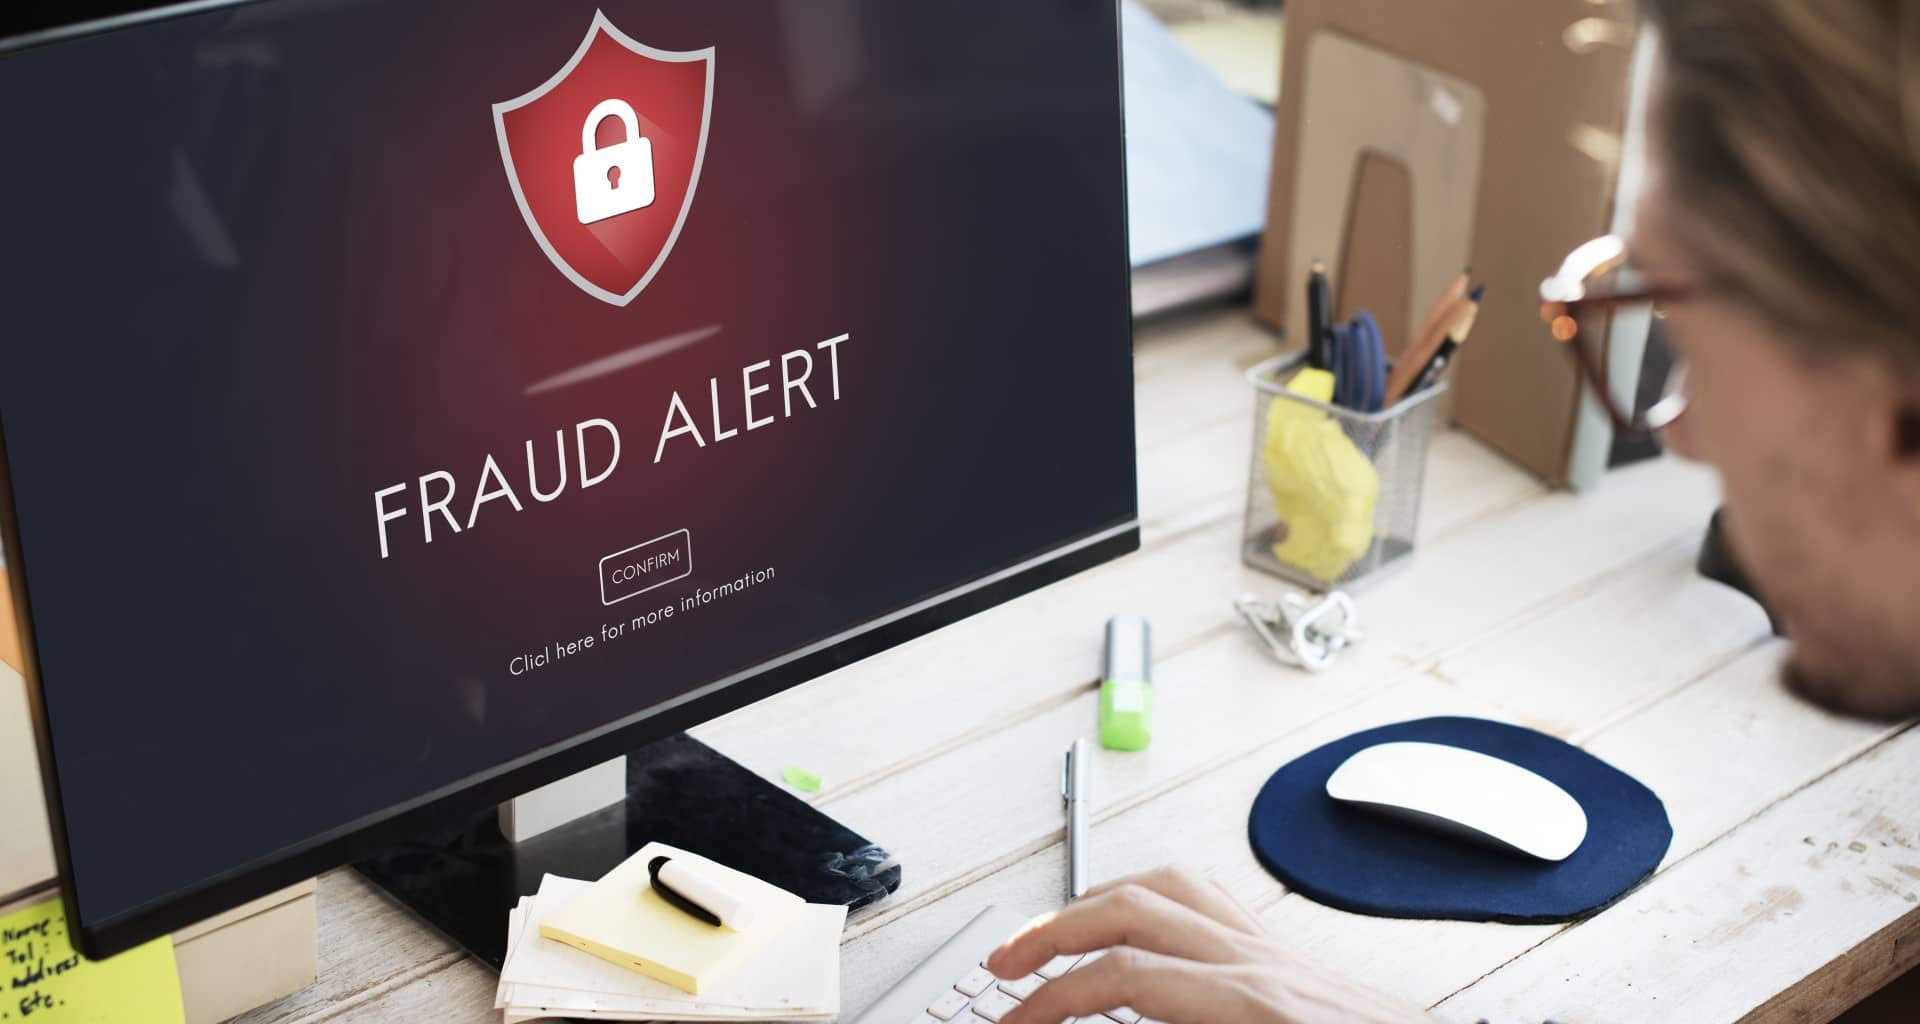 Vetting websites for scams